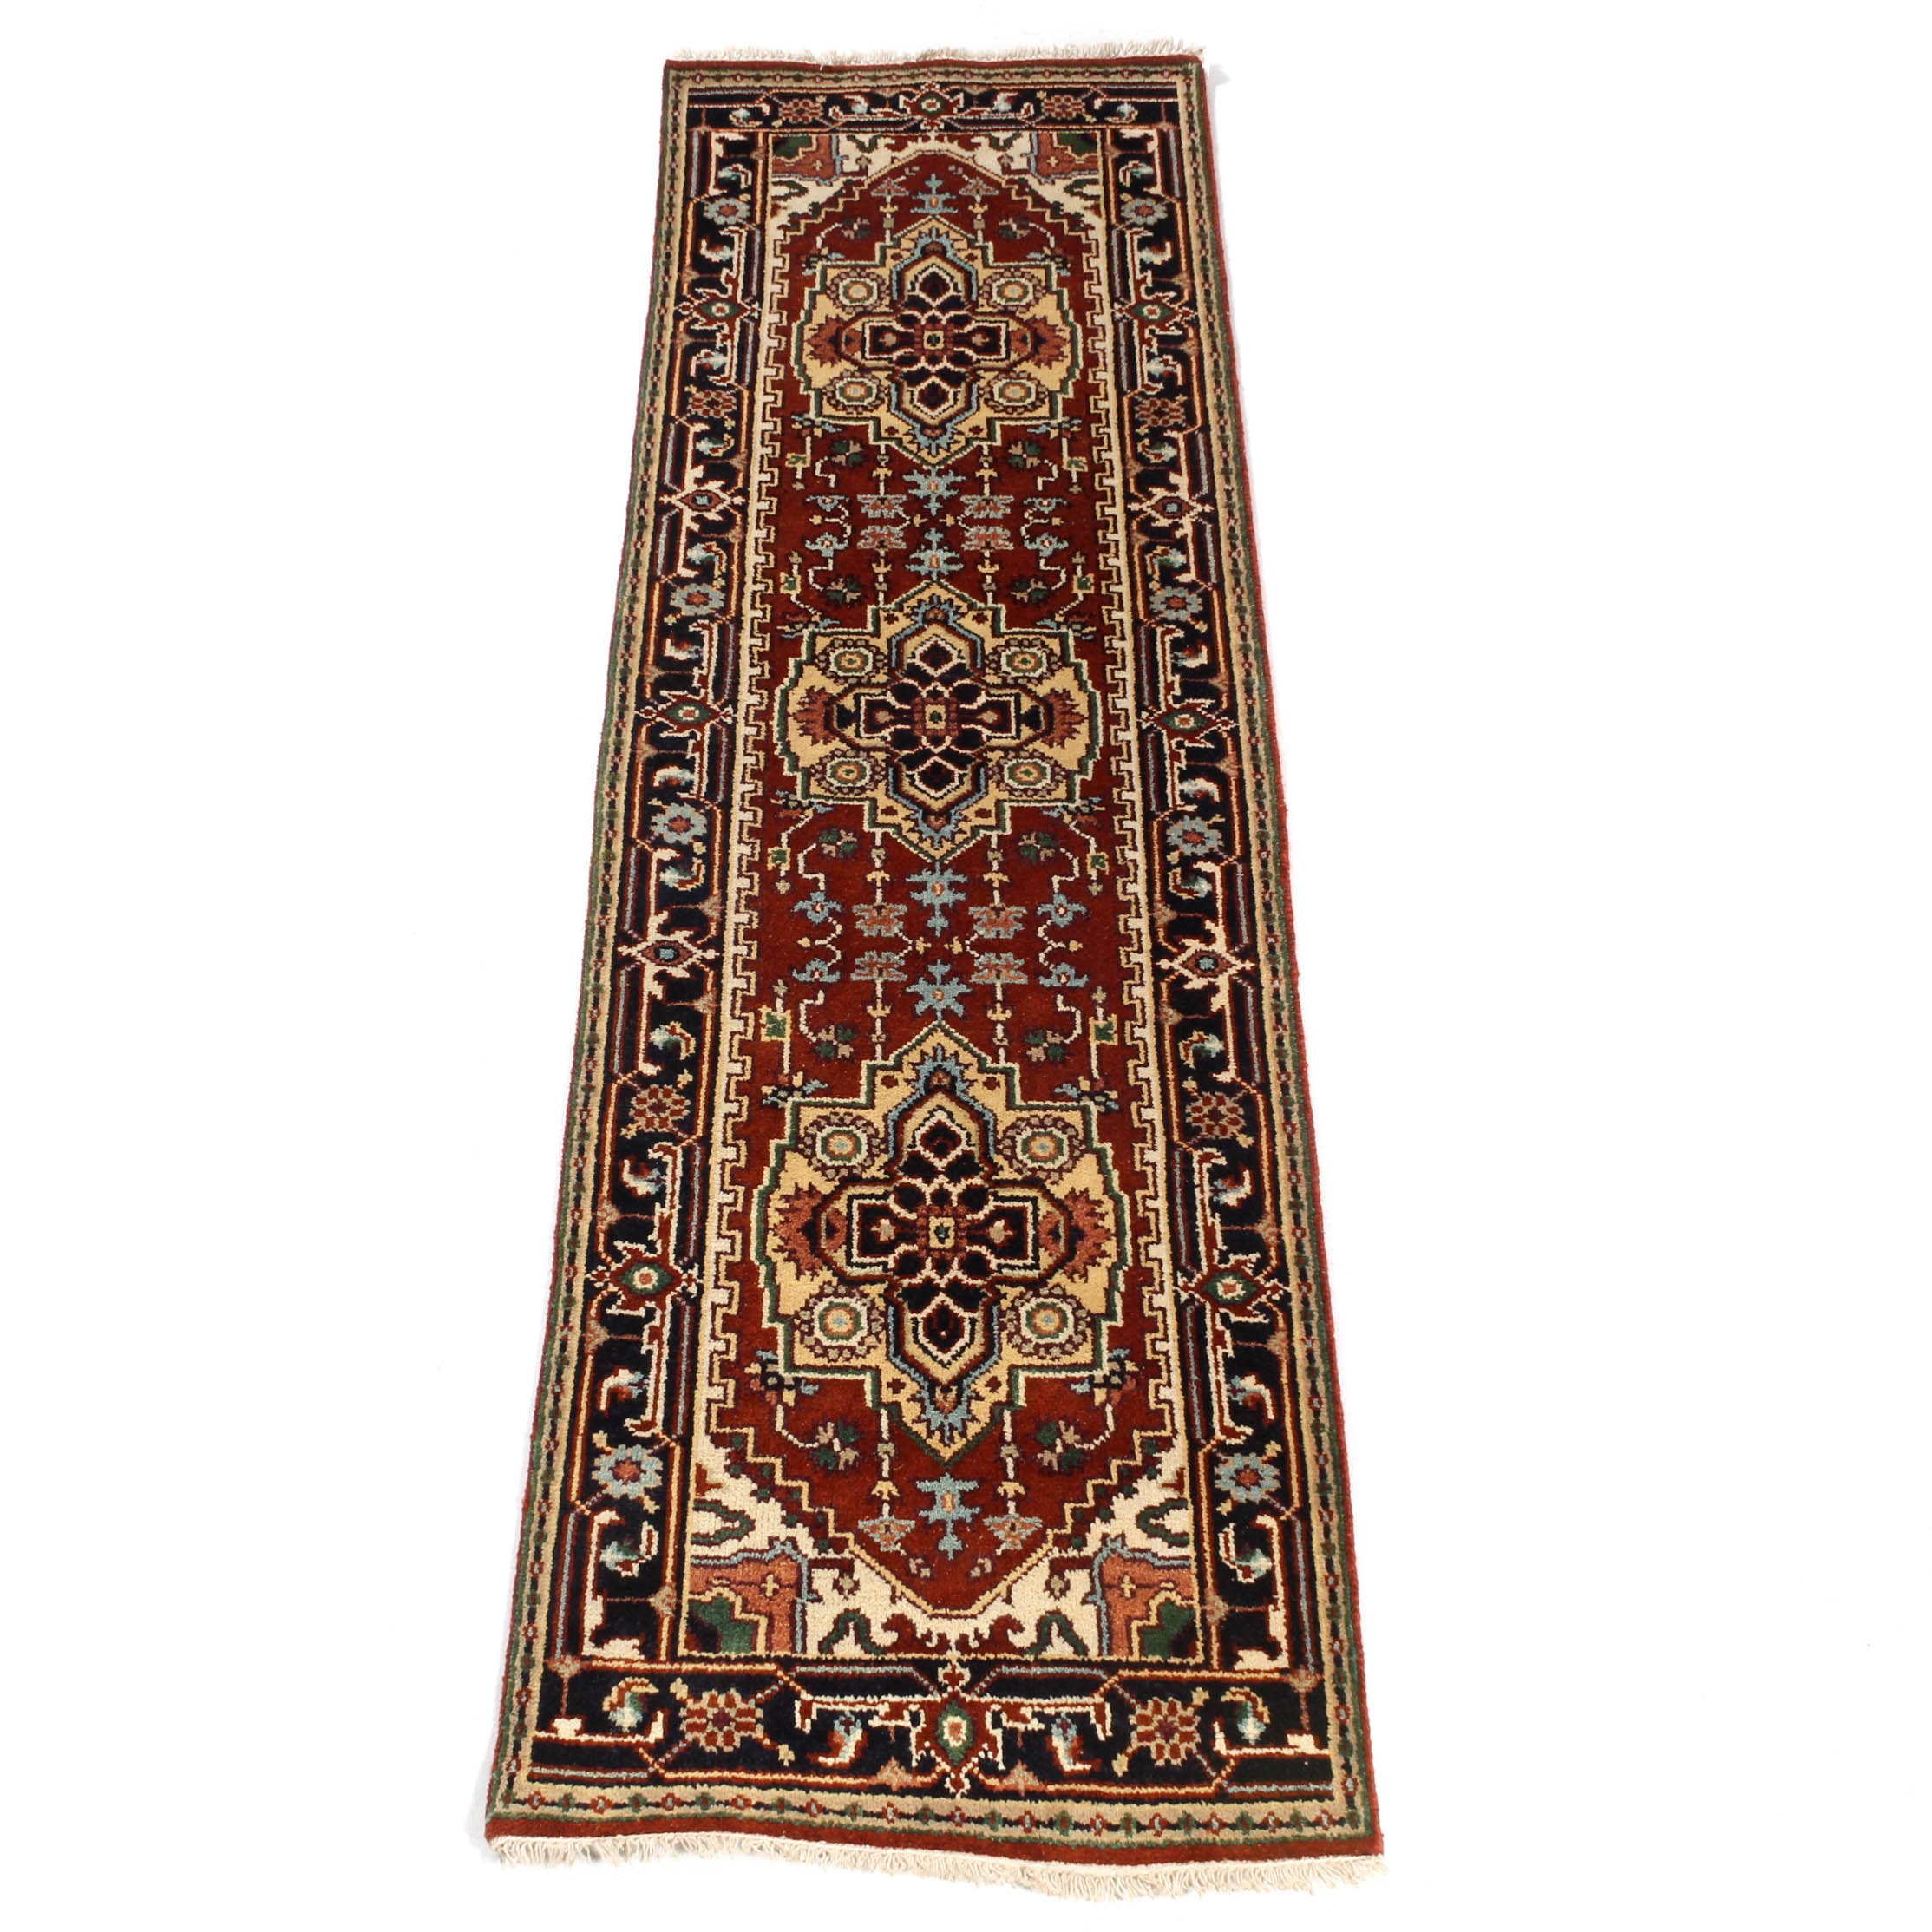 2.5' x 8.4' Hand-Knotted Indo-Persian Heriz Carpet Runner